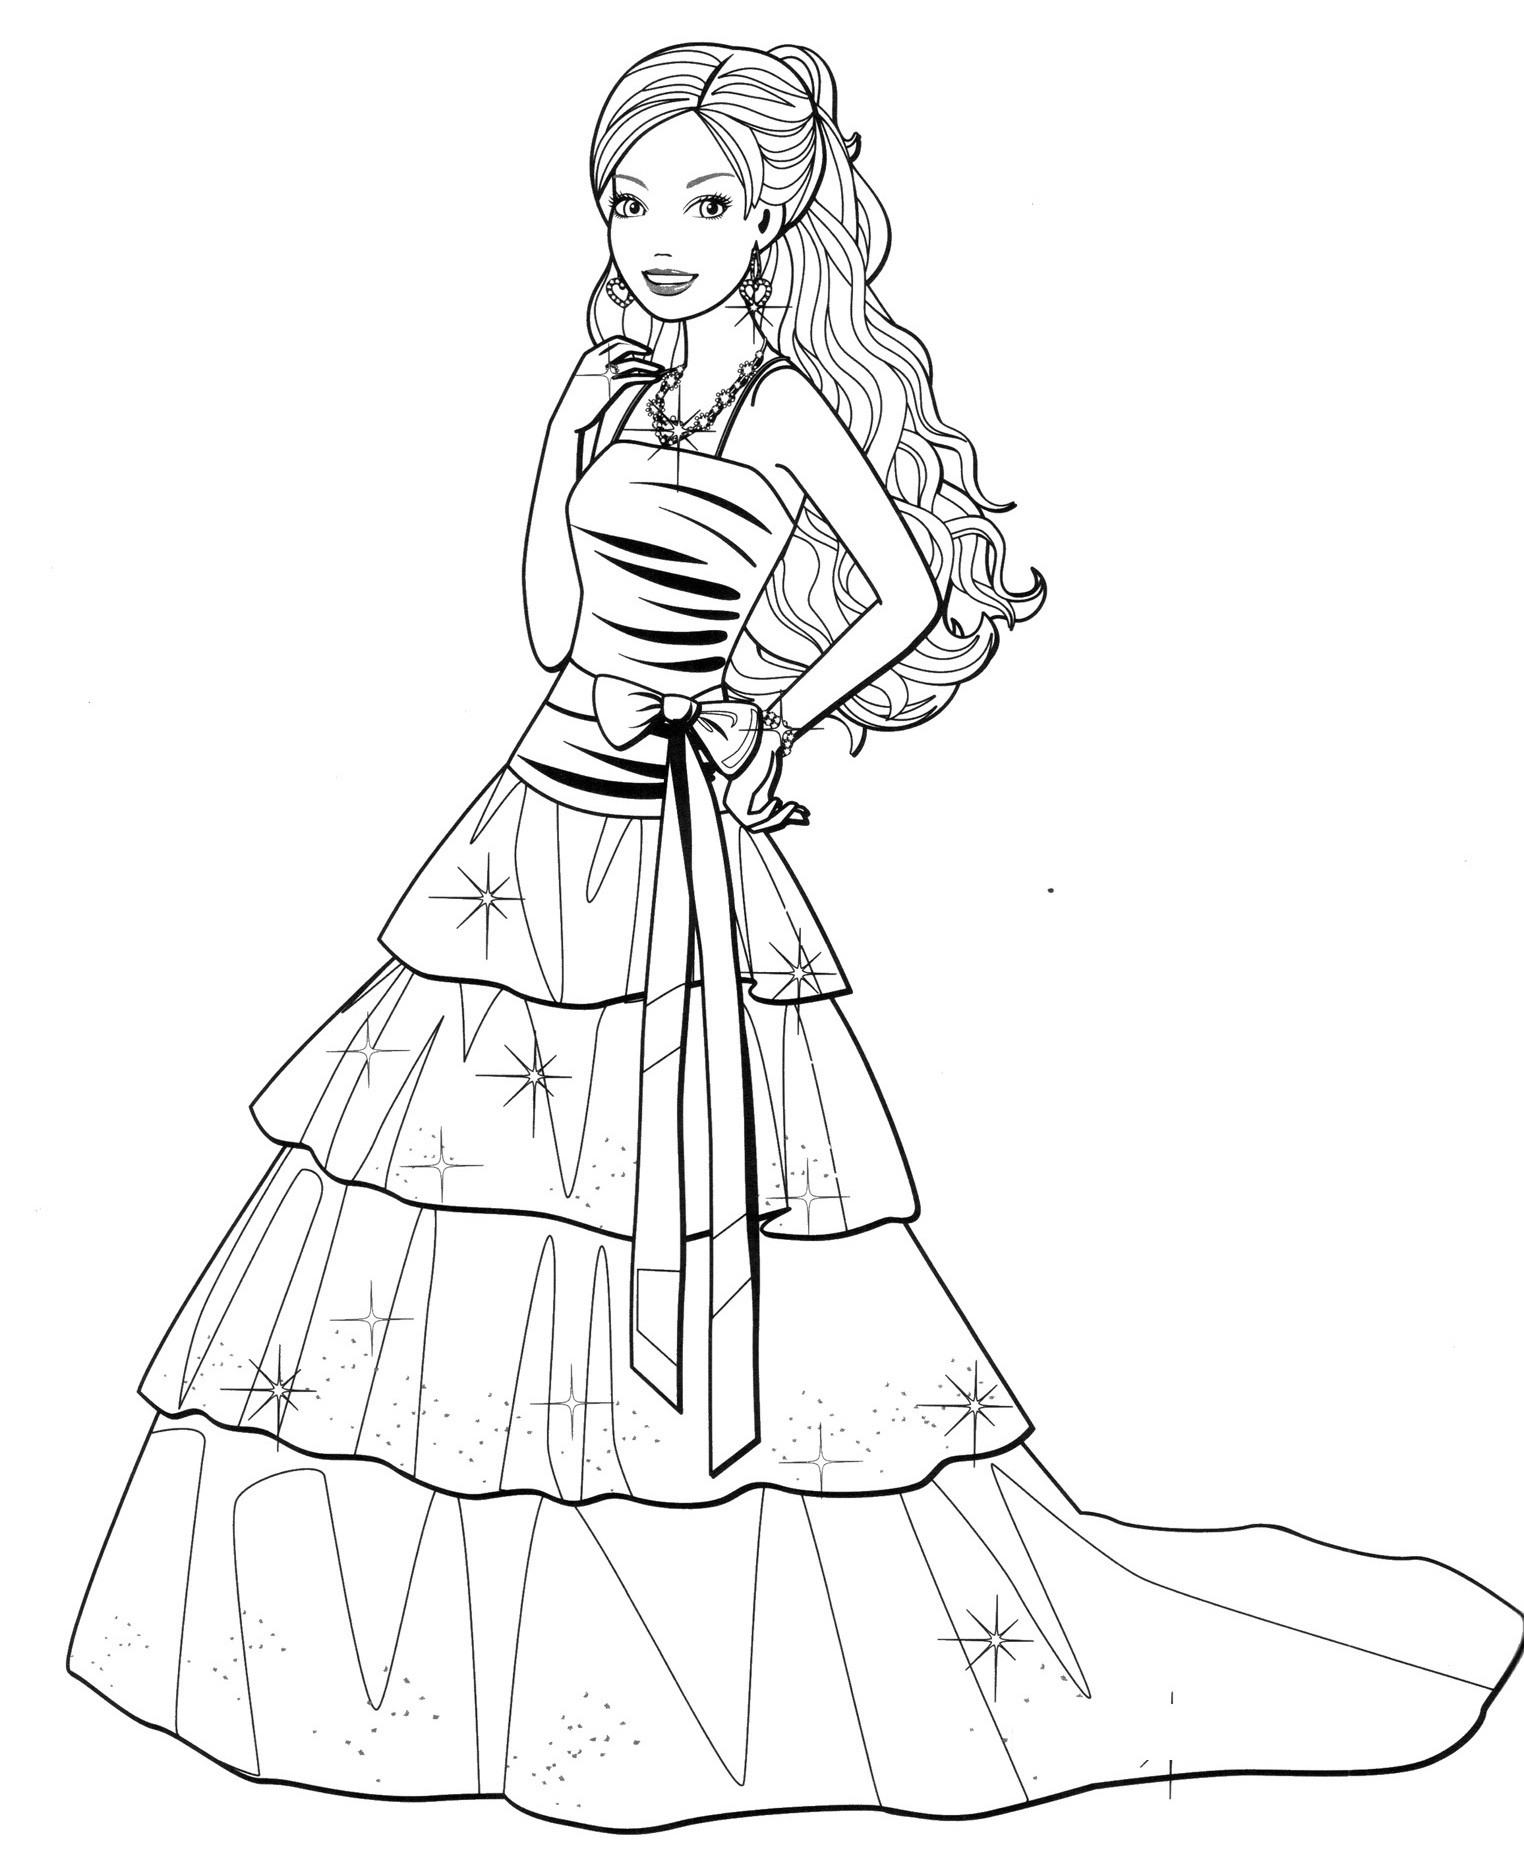 1524x1867 Barbie Dress Coloring Page For Girls Beautiful Fashion